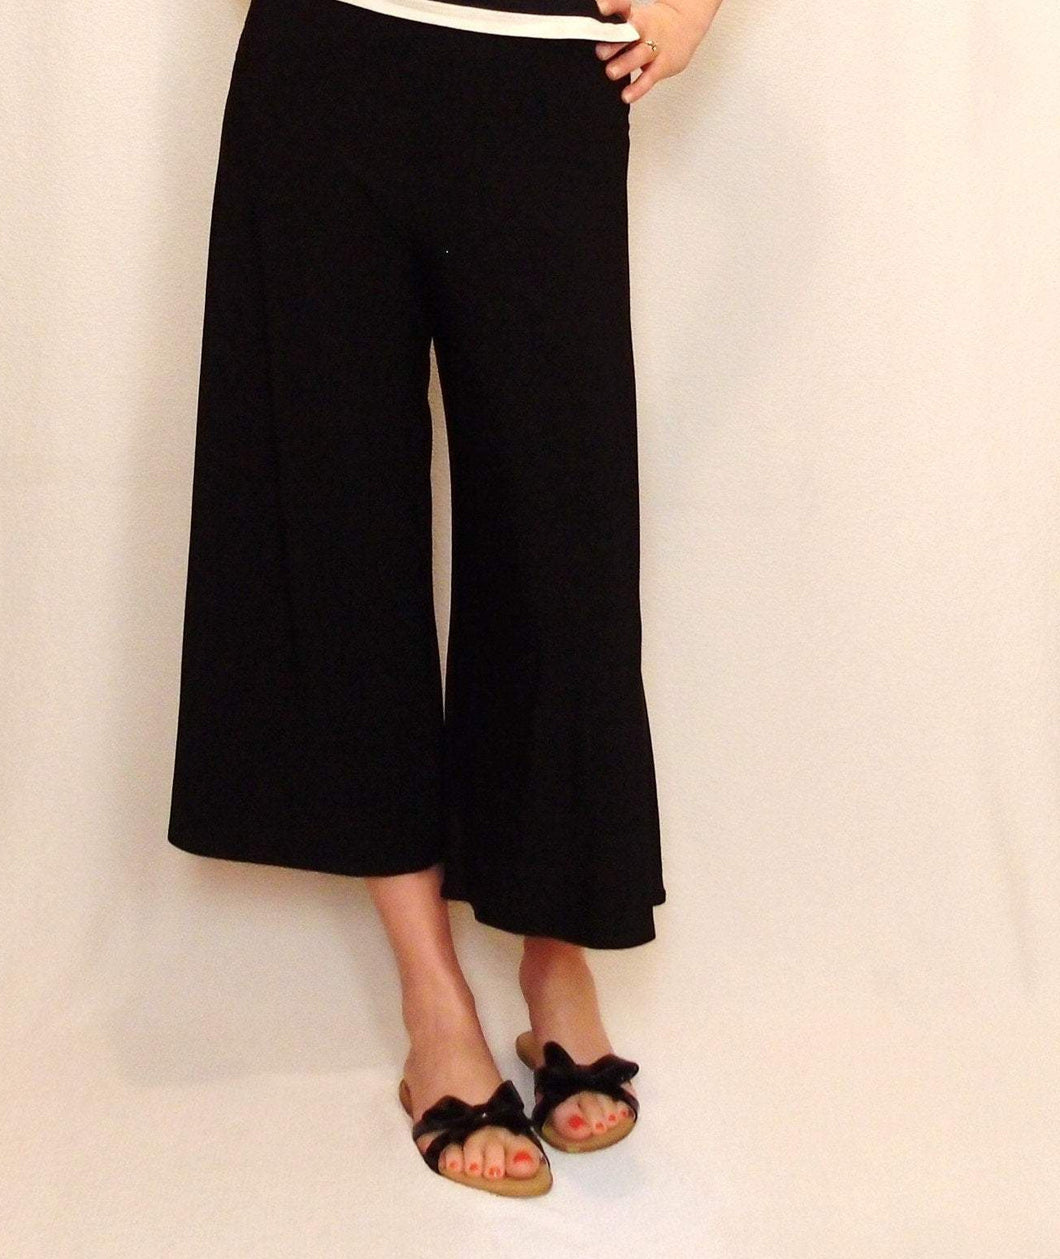 Gaucho Pants in Organic Bamboo | Sizes XXS-XXL